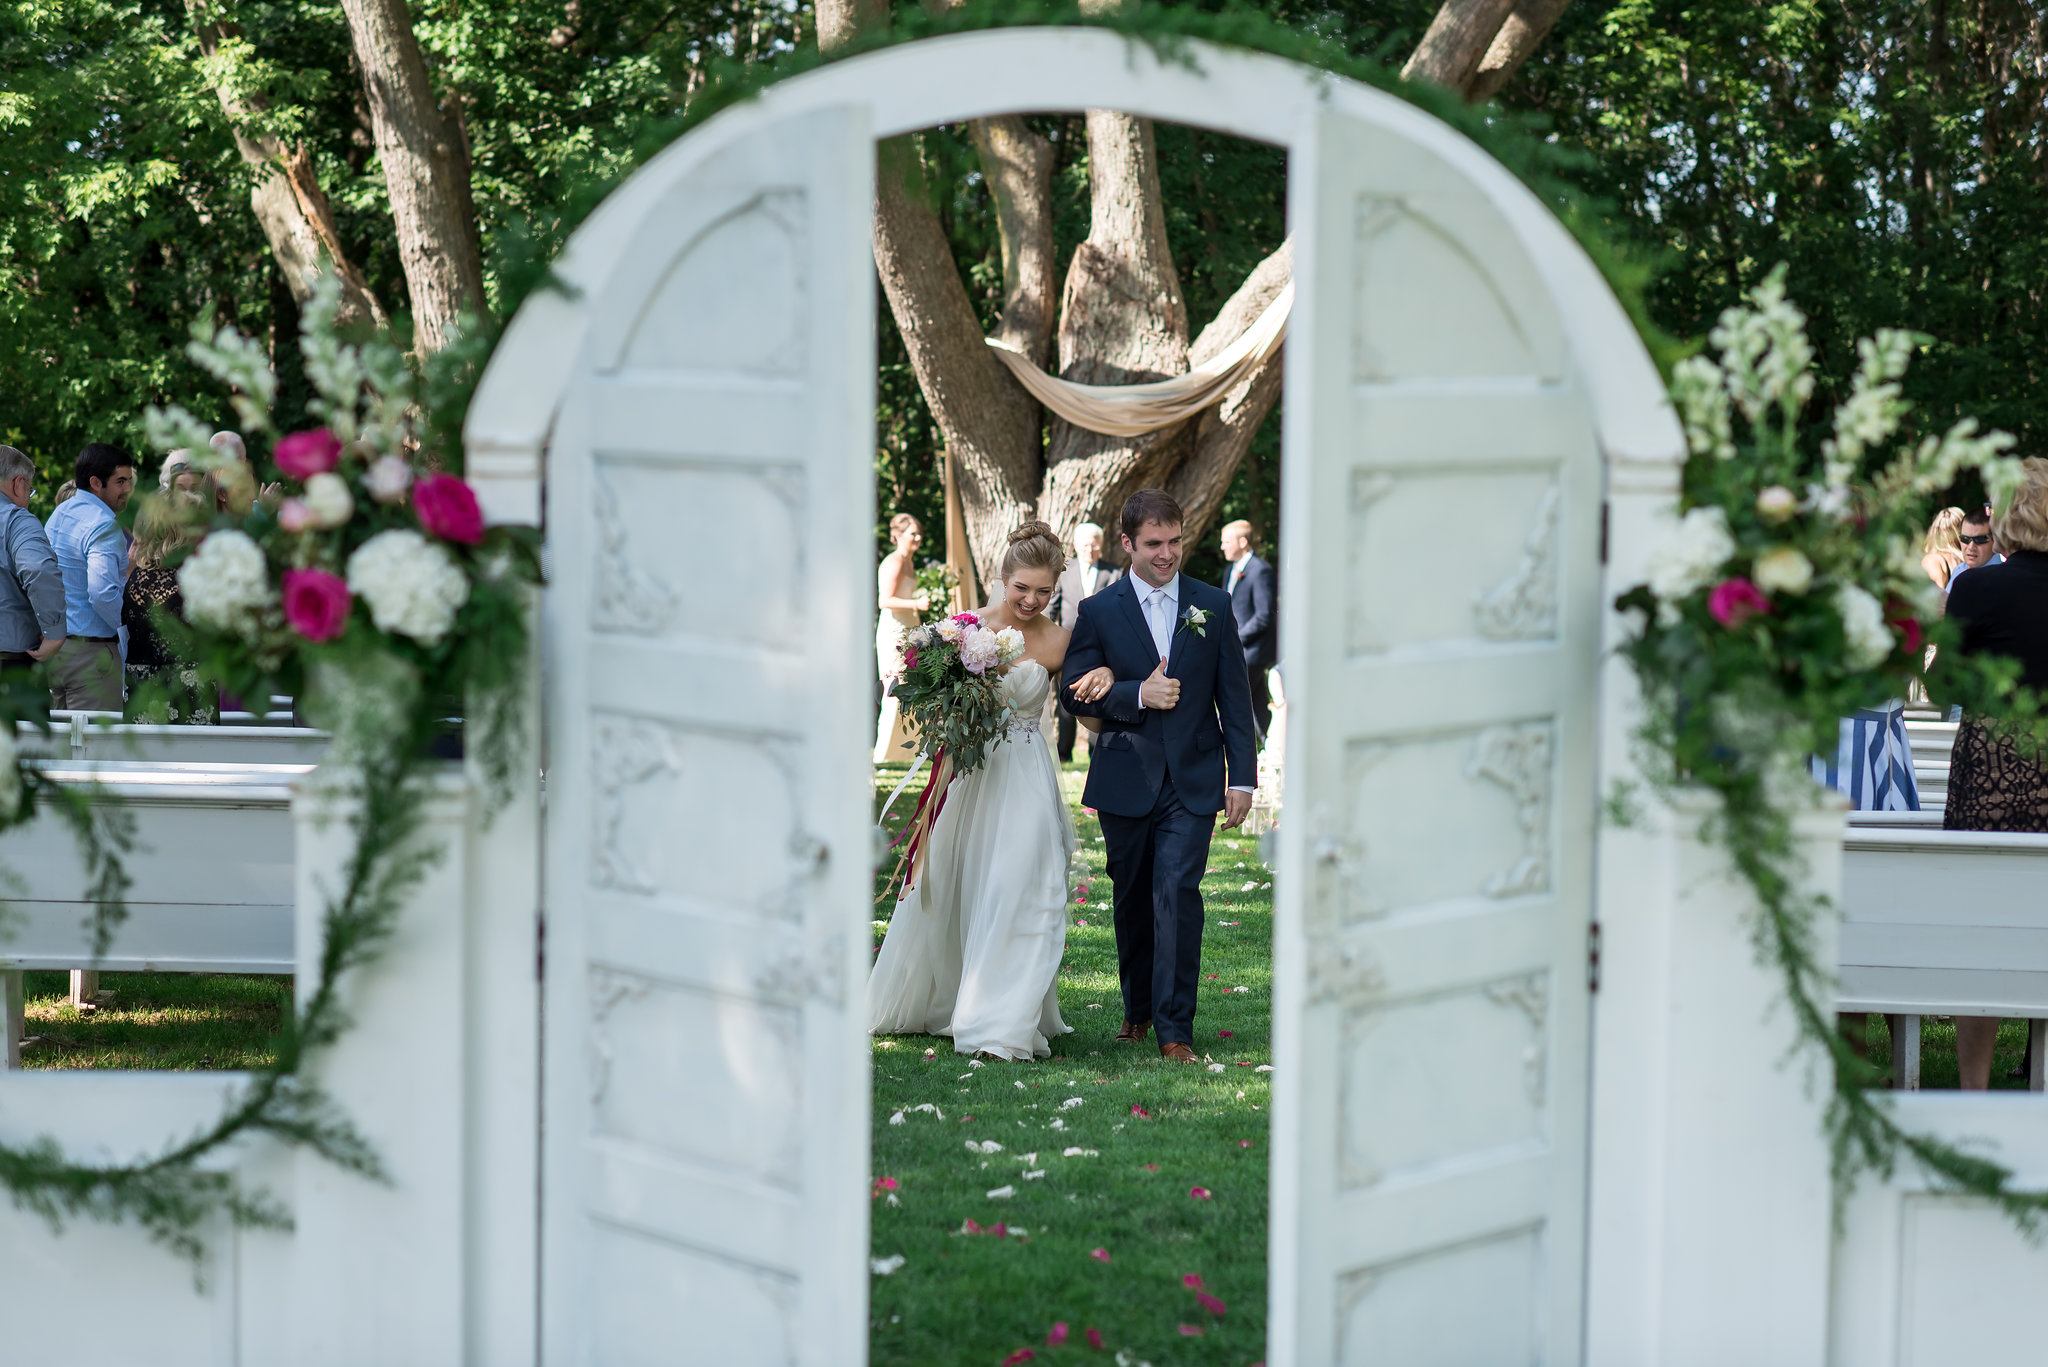 just married peek through white arch doors | Kelly Birch Photography :: Bloom Lake Barn :: Sixpence Events Minnesota wedding planner :: A Vintage Touch Weddings :: Brett Dorian.jpg